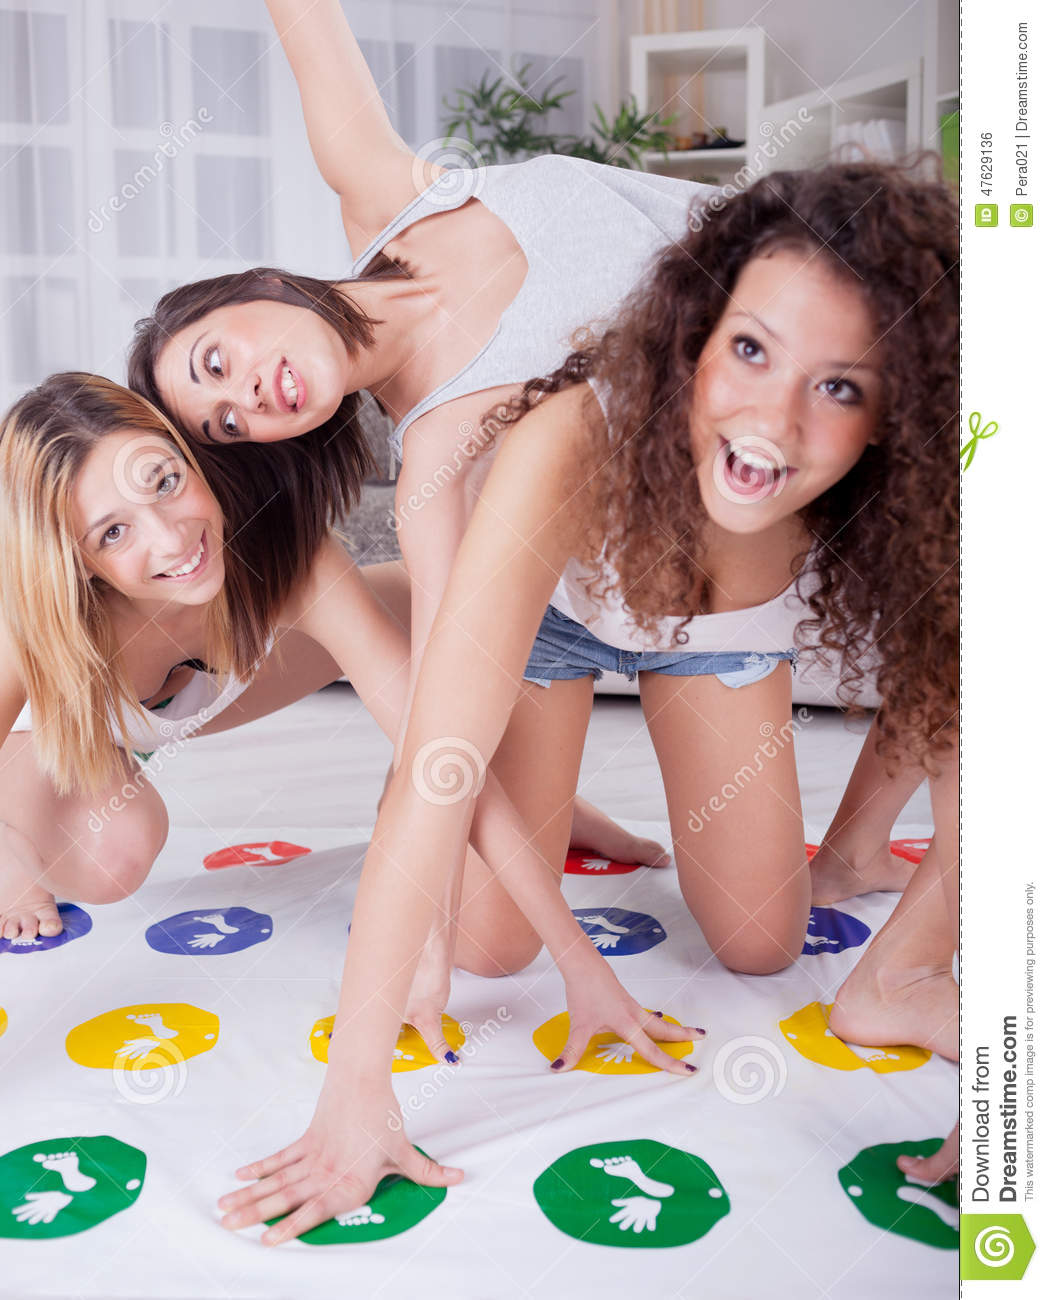 Naked girls playing twister game looking like gymnasts 8